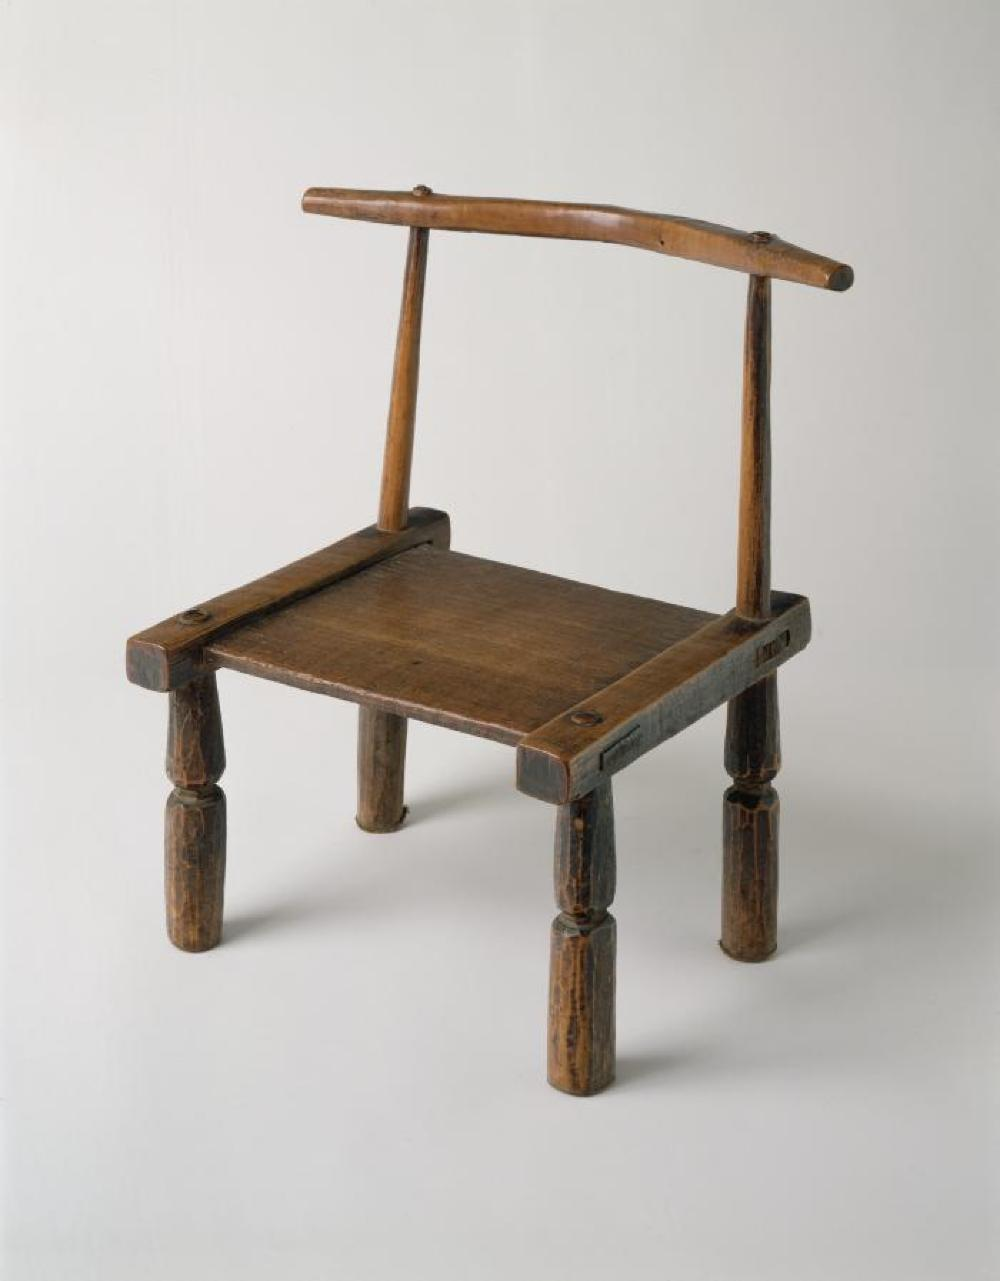 Senufo (Côte d'Ivoire); Chair ; Wood; 21 3/8 x 15 x 14 3/8 in.; Collection of Isamu Noguchi. (Study Collection; Collectibles, C-Apt-33)